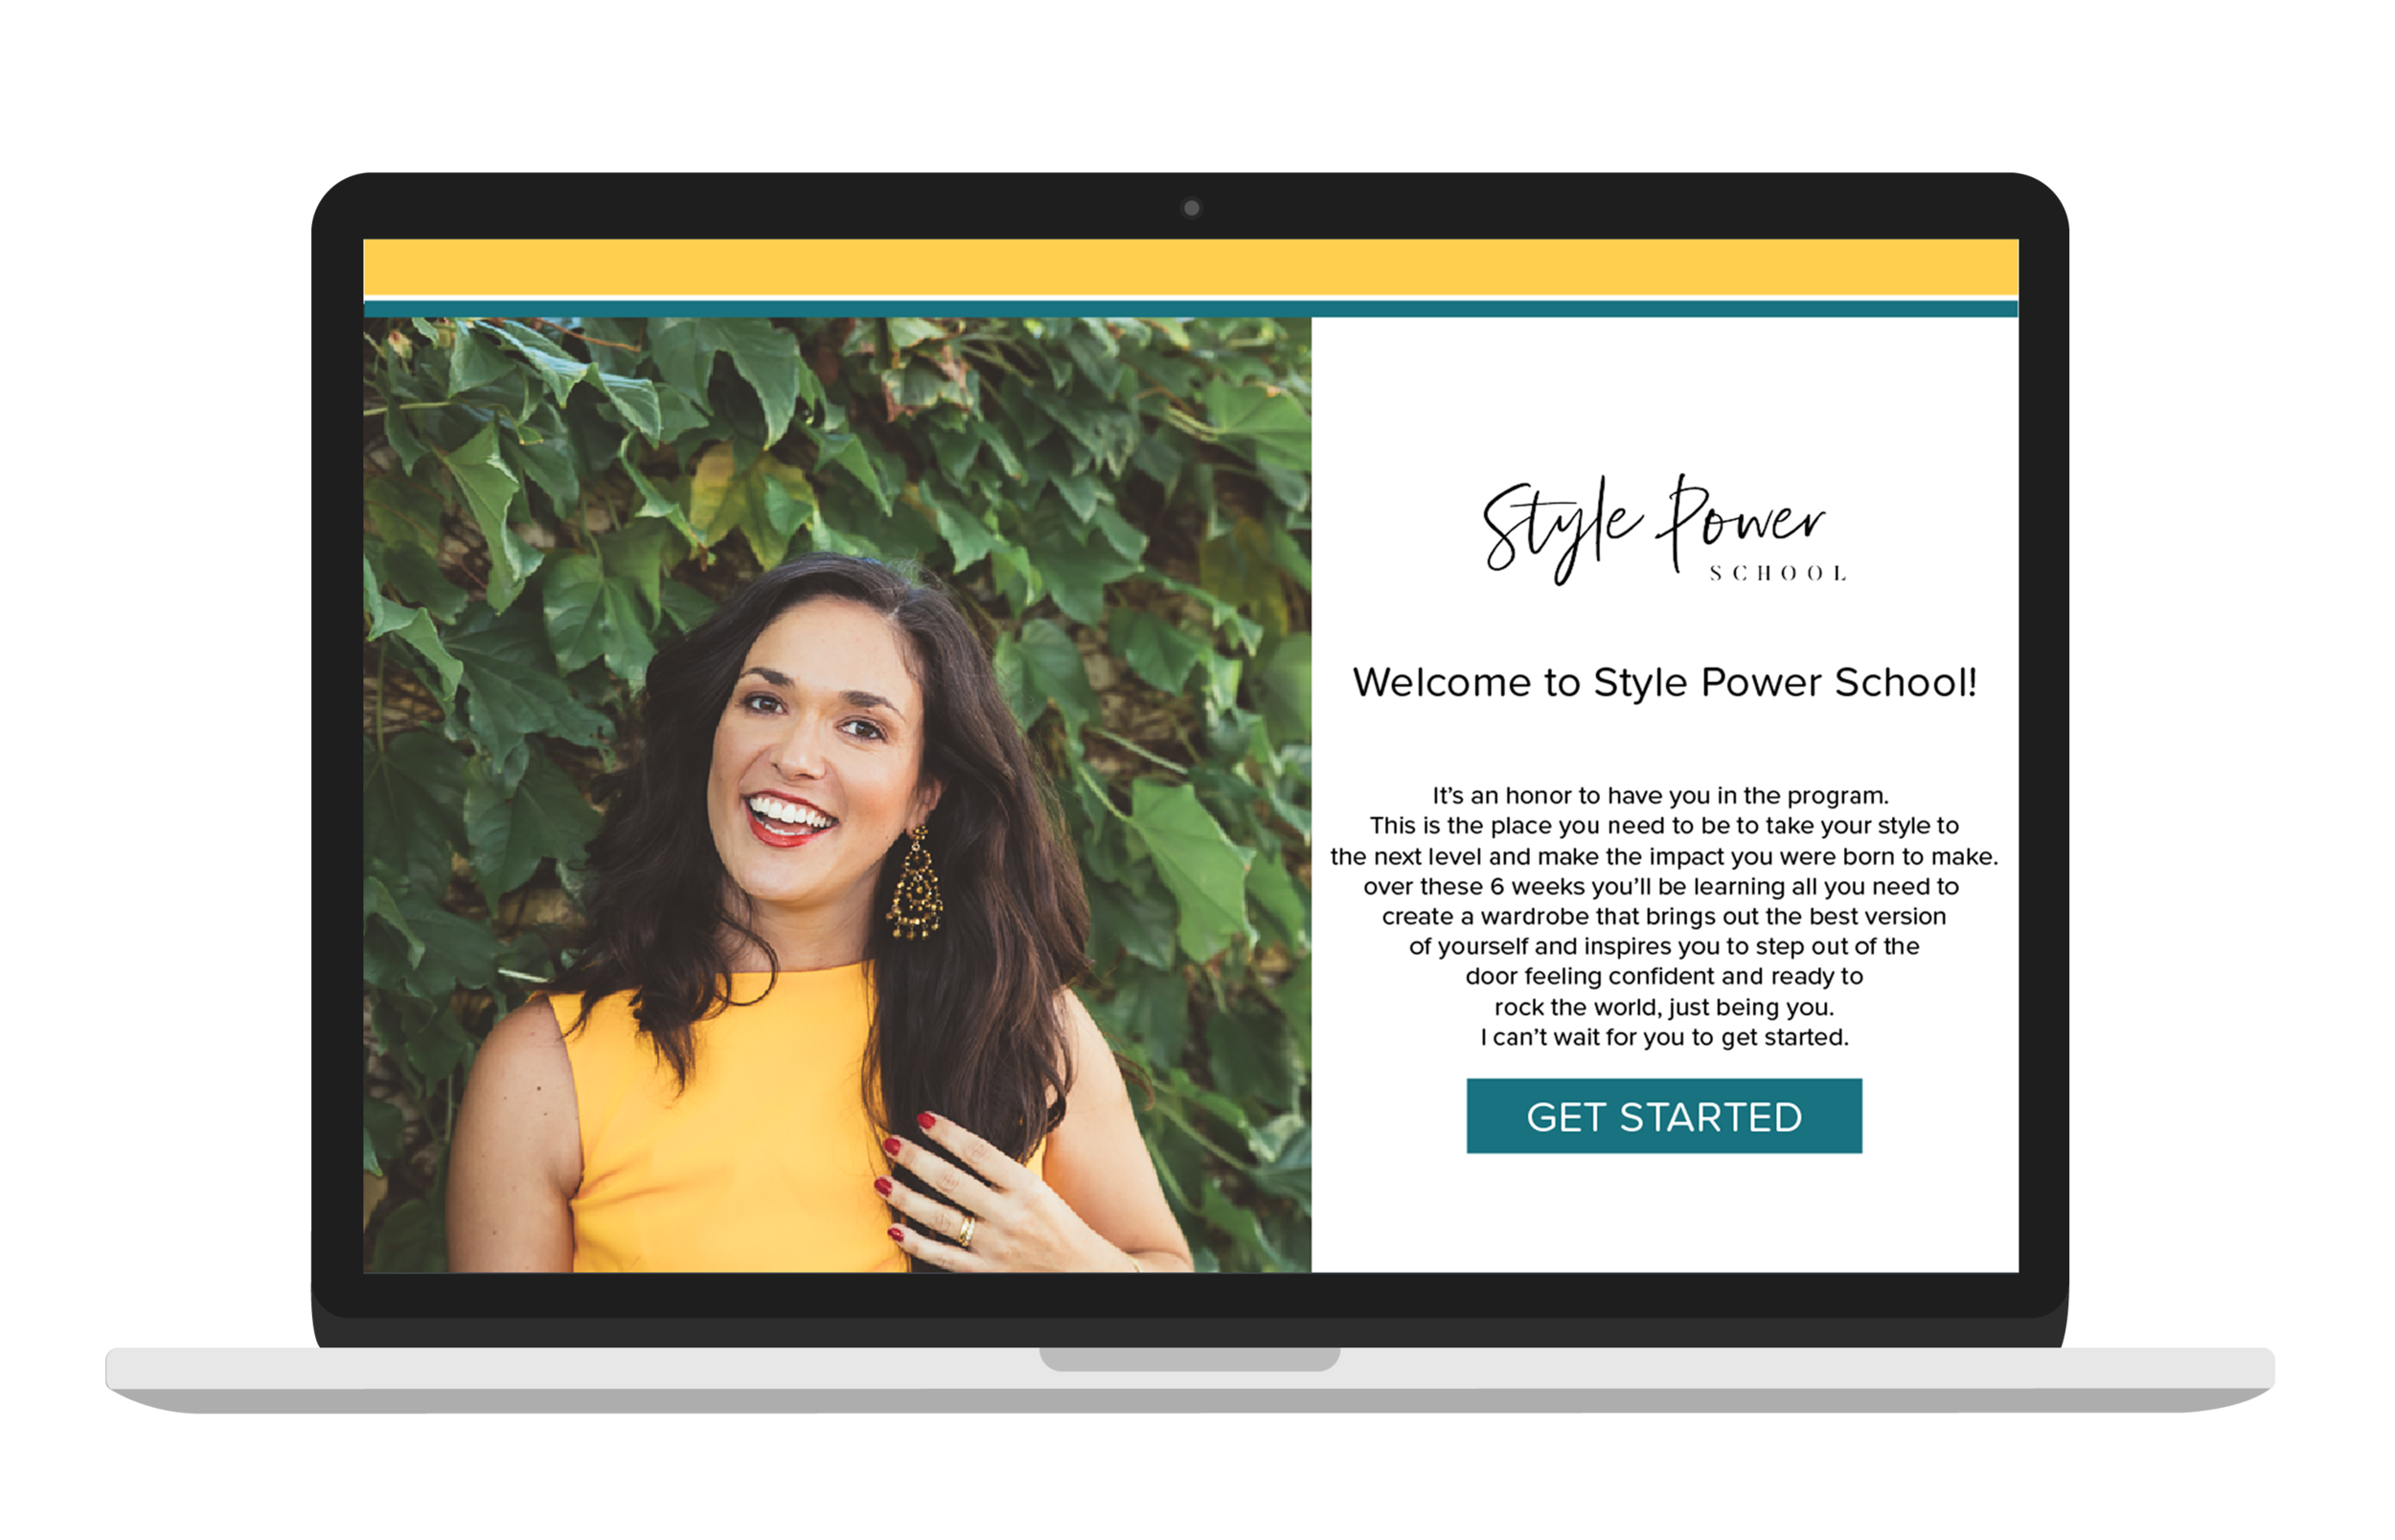 Work with me - style power school